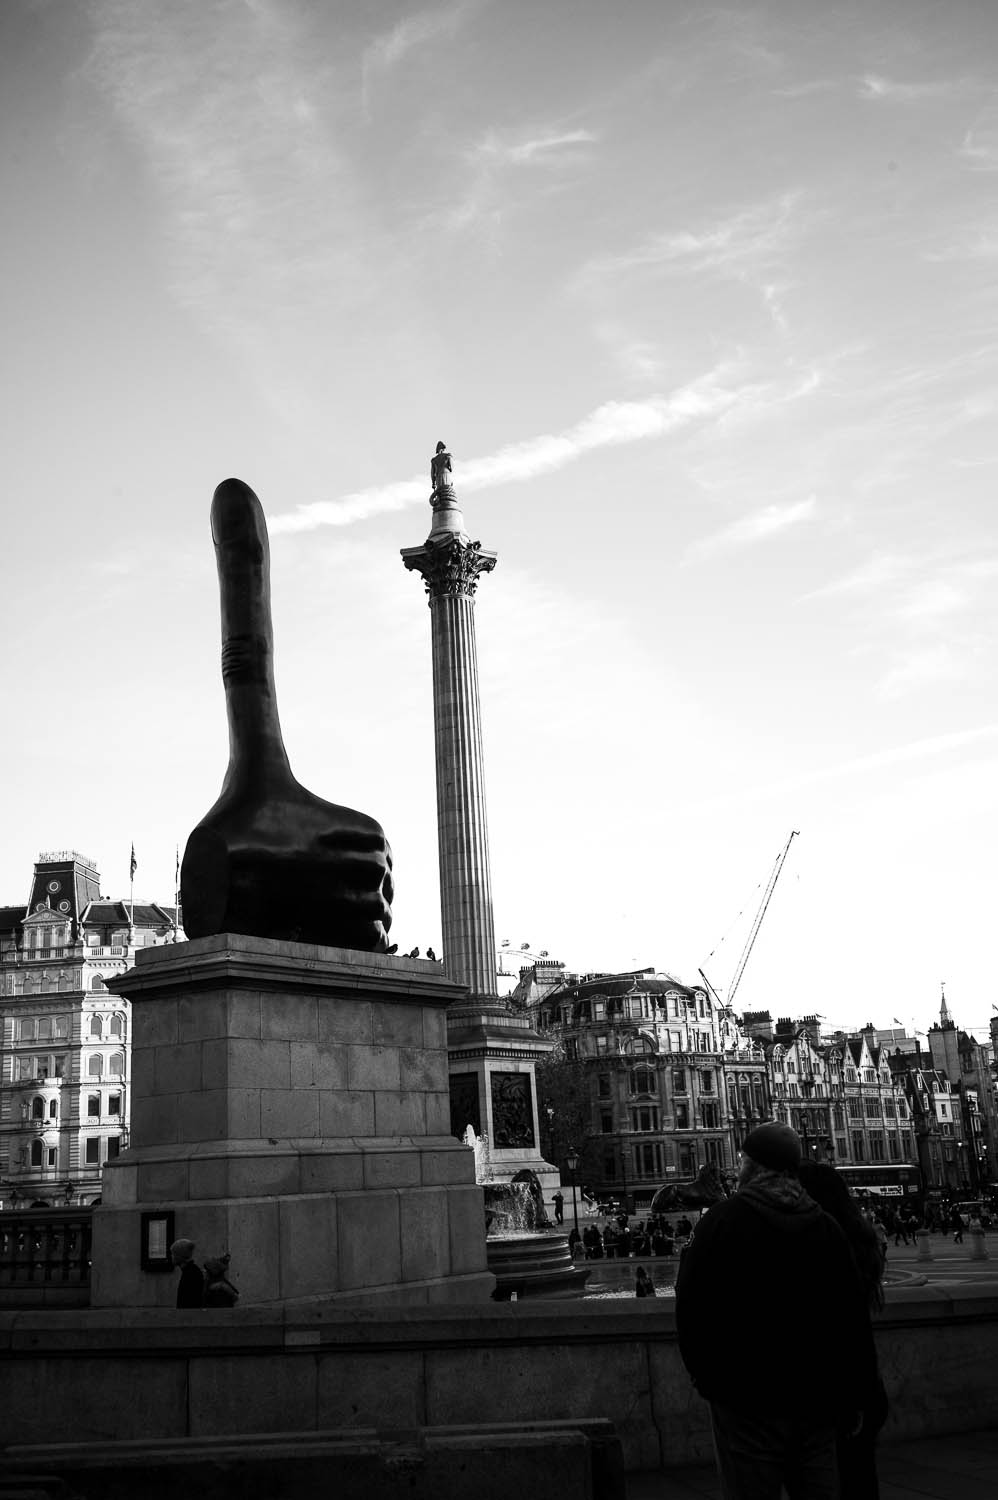 A thumbs up statue outside a museum in London